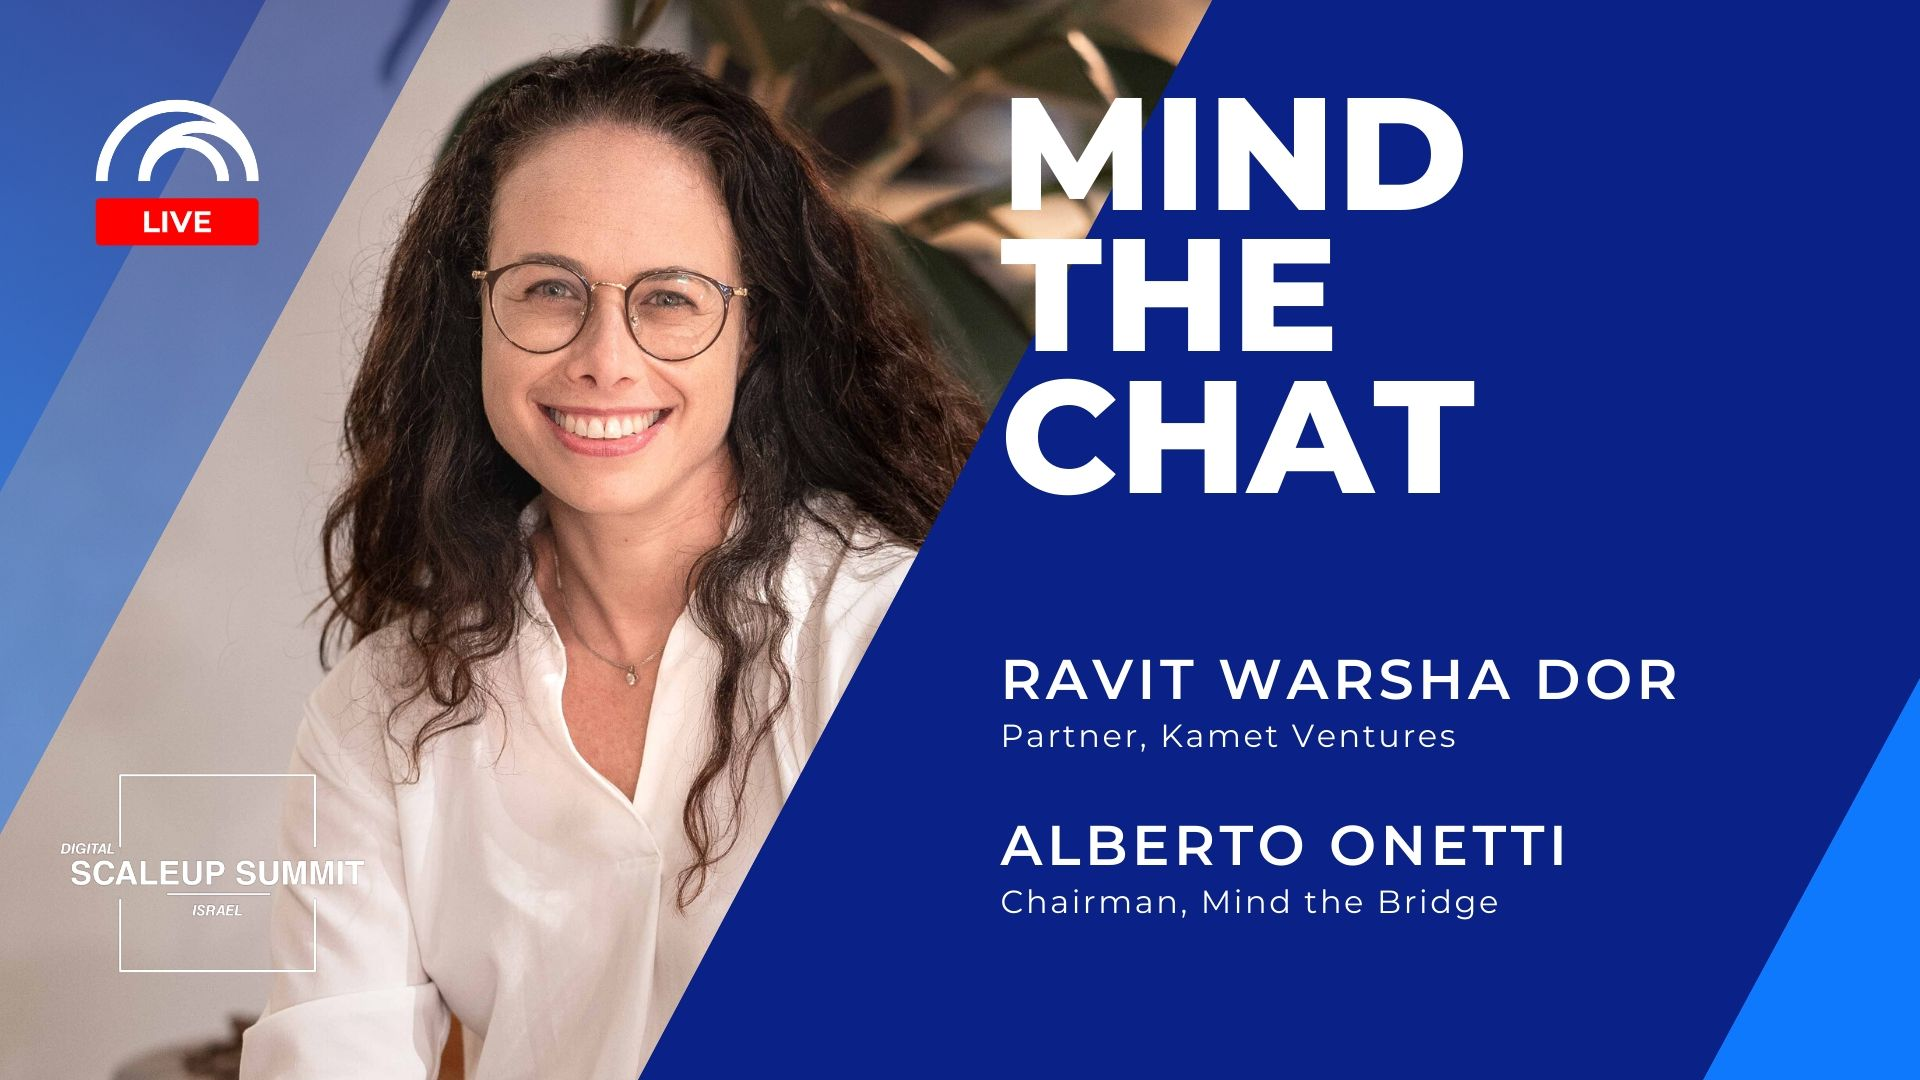 Mind the Chat Ravit Warsha Dor (Kamet Ventures)-Blogpost